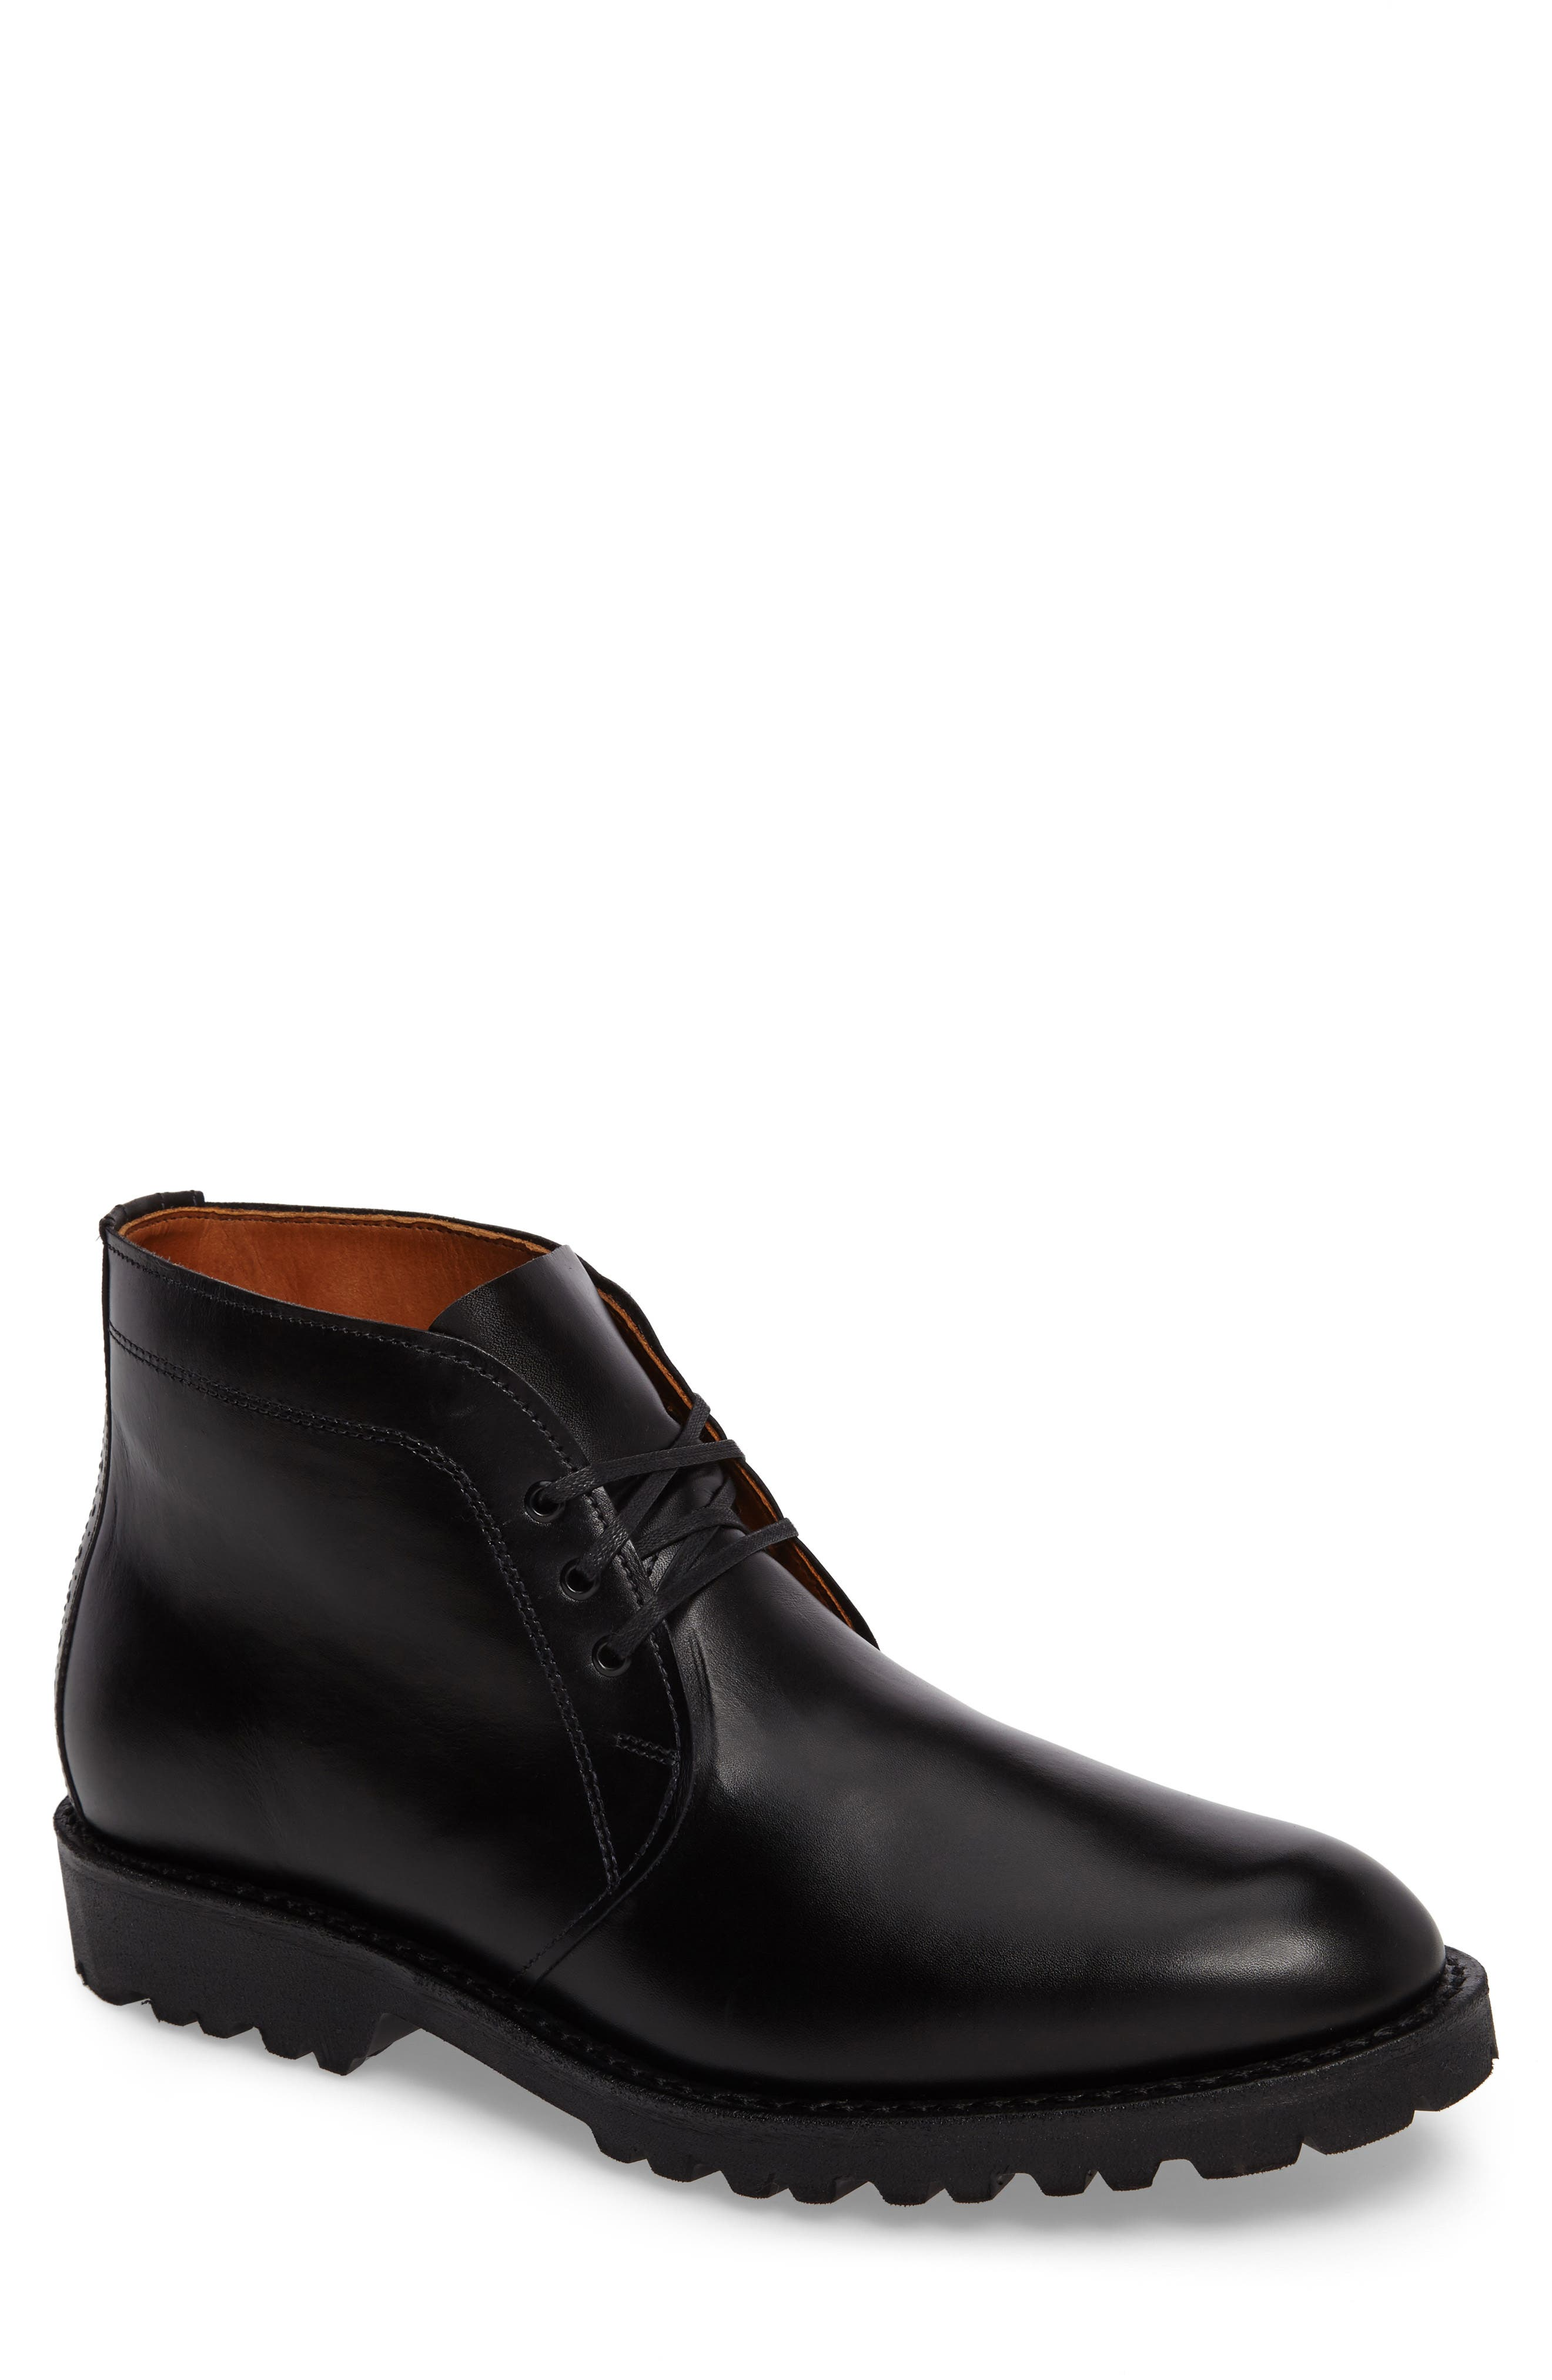 Tate Chukka Boot,                             Main thumbnail 1, color,                             001